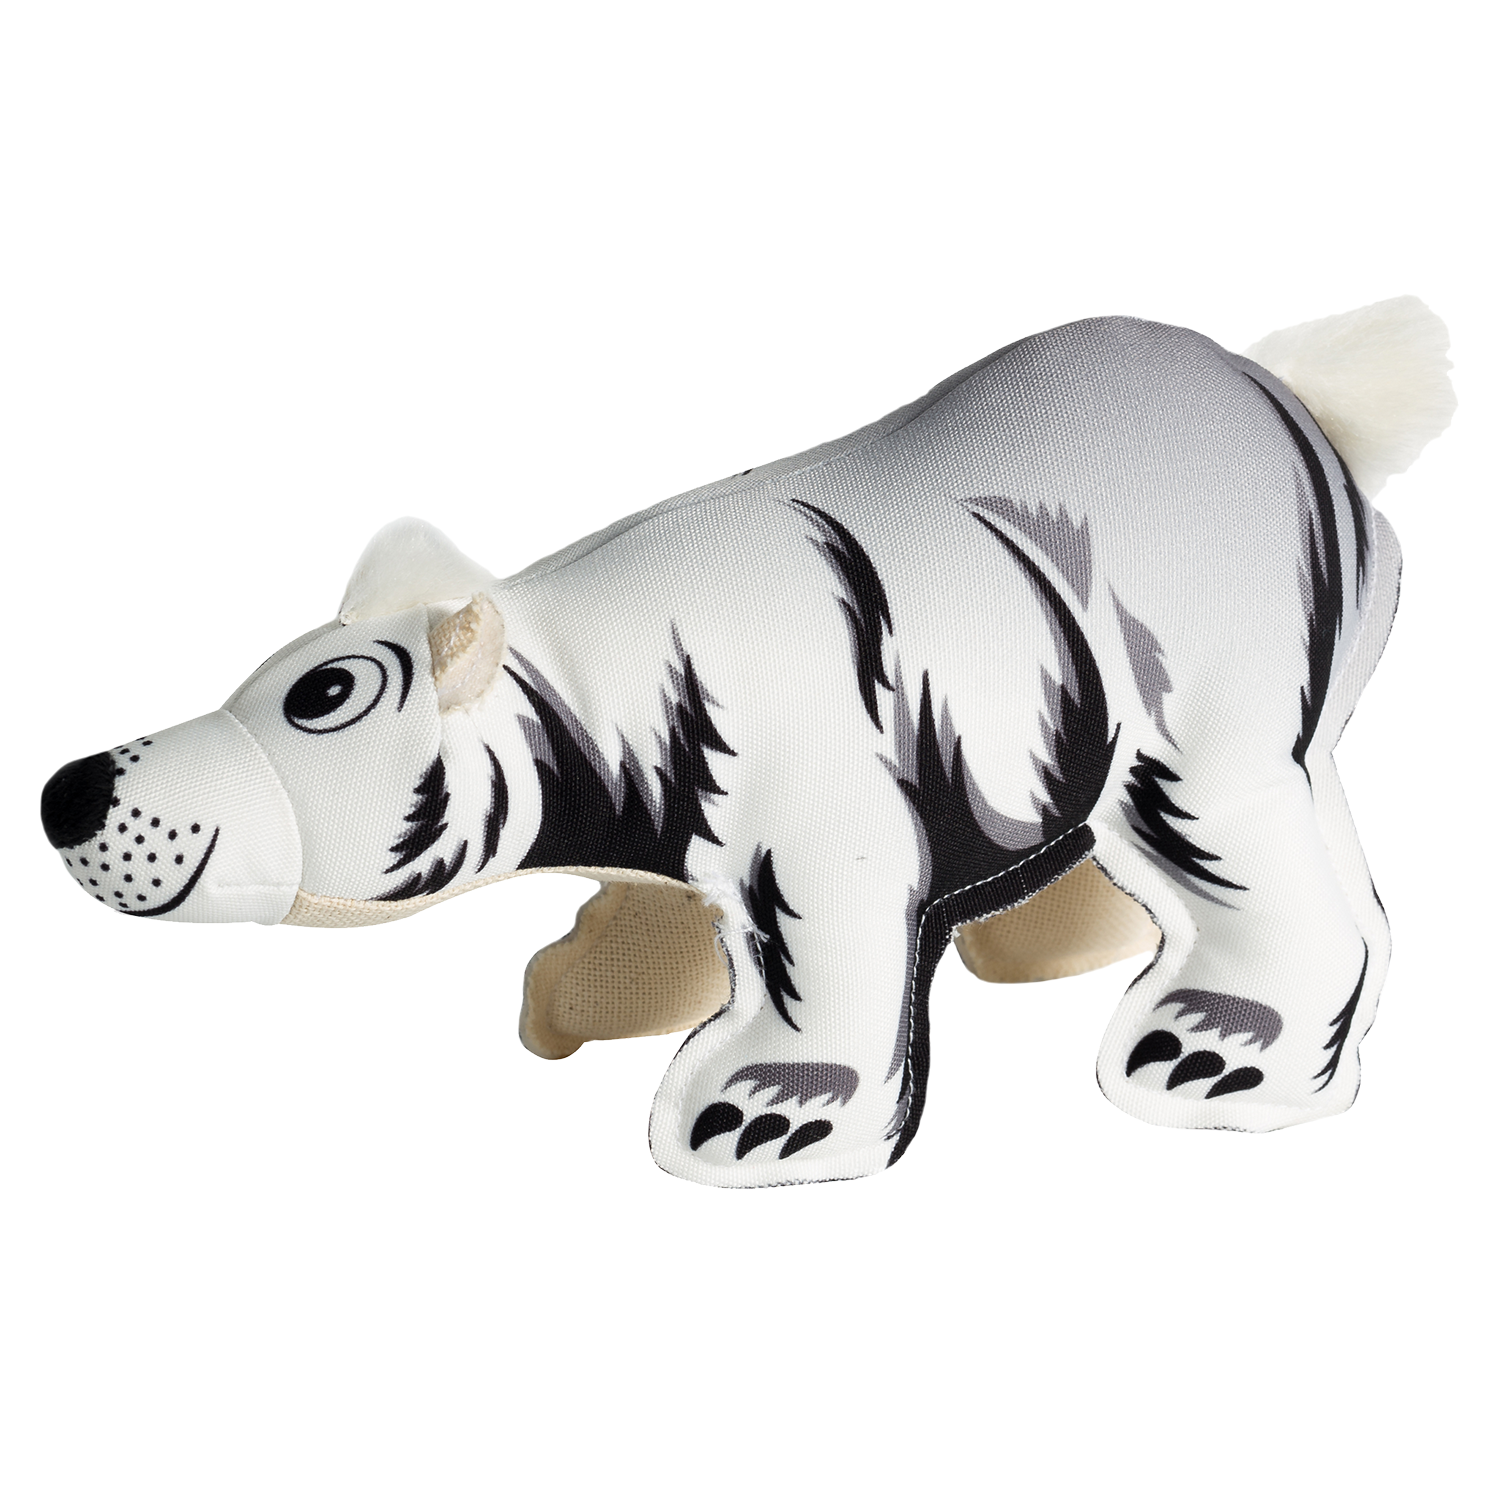 Happy Tails Critterz Canvas Dog Toy - Polar Bear